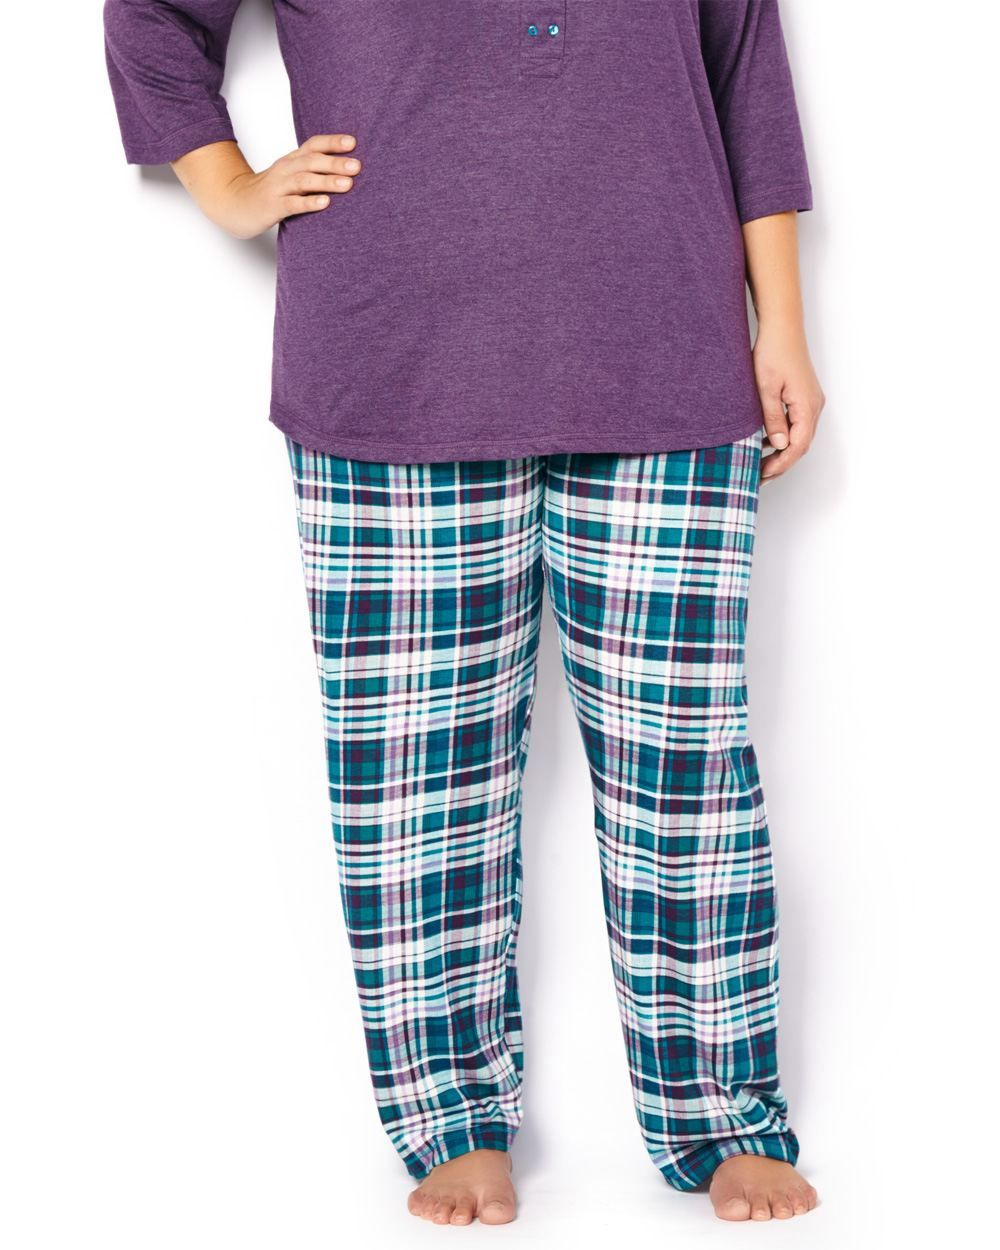 8c9f6da525 3x Sleep in style thanks to this comfy plus-size sleep pant! Features a  trendy plaid print